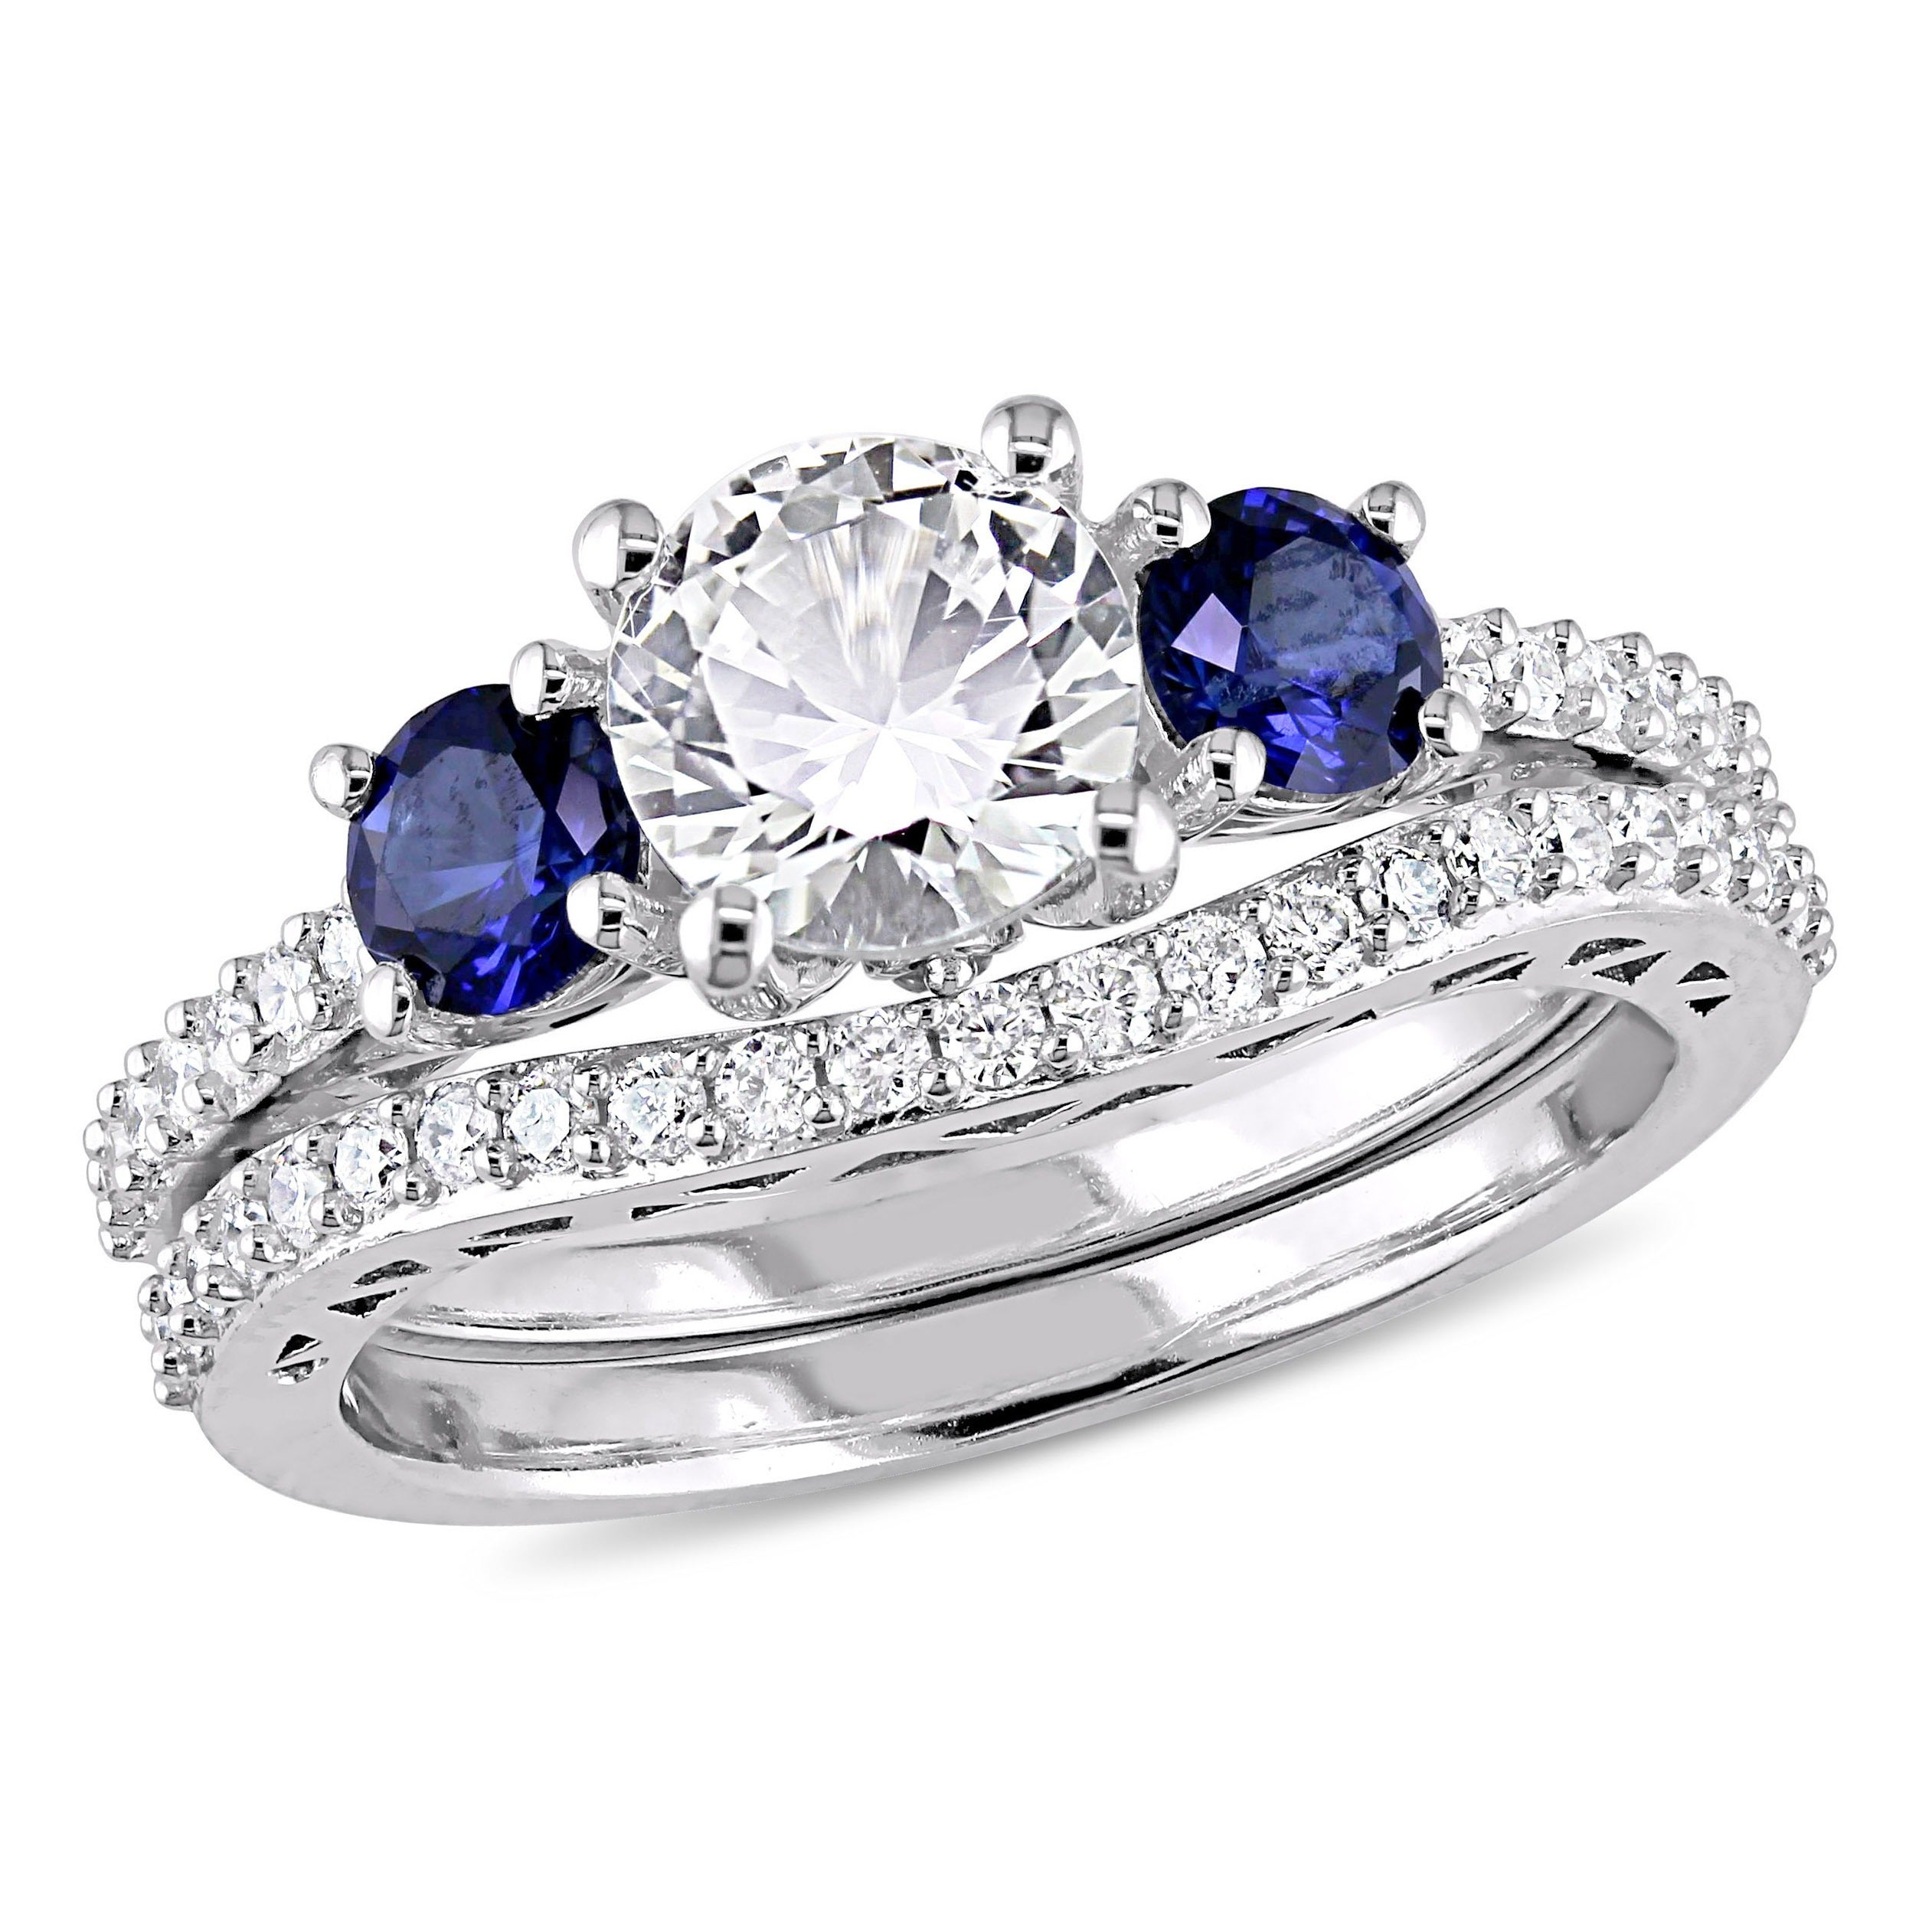 my a i blue heat love natural s between sides wedding engagement sapphire rings with treated ct t and didn diamonds topic on that img ring difference there know before